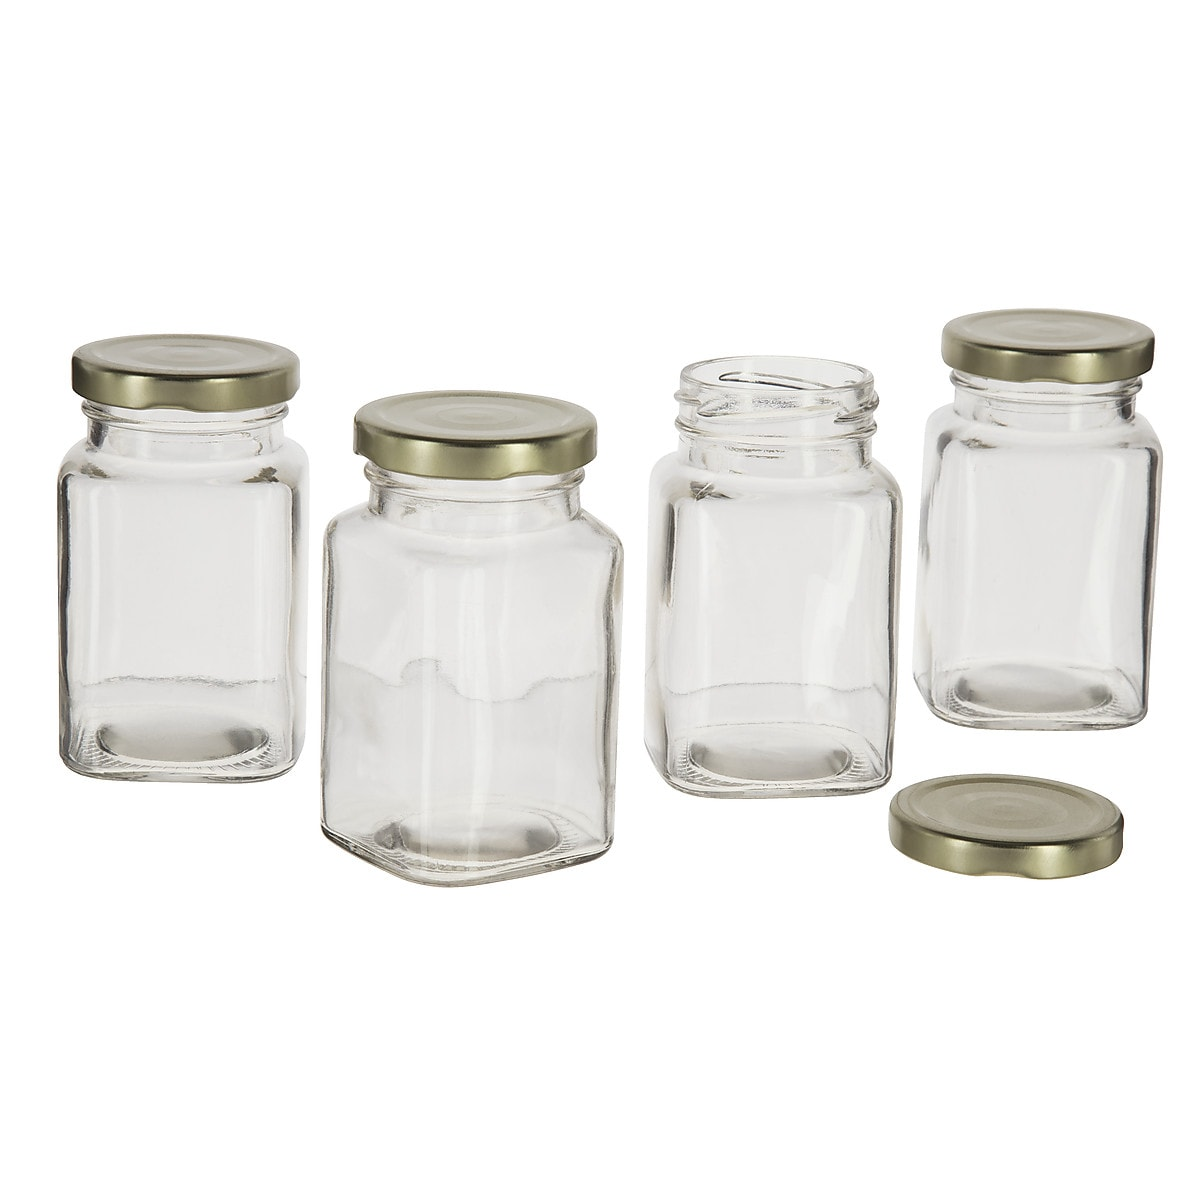 Screw-Top Glass Jars 4-pack